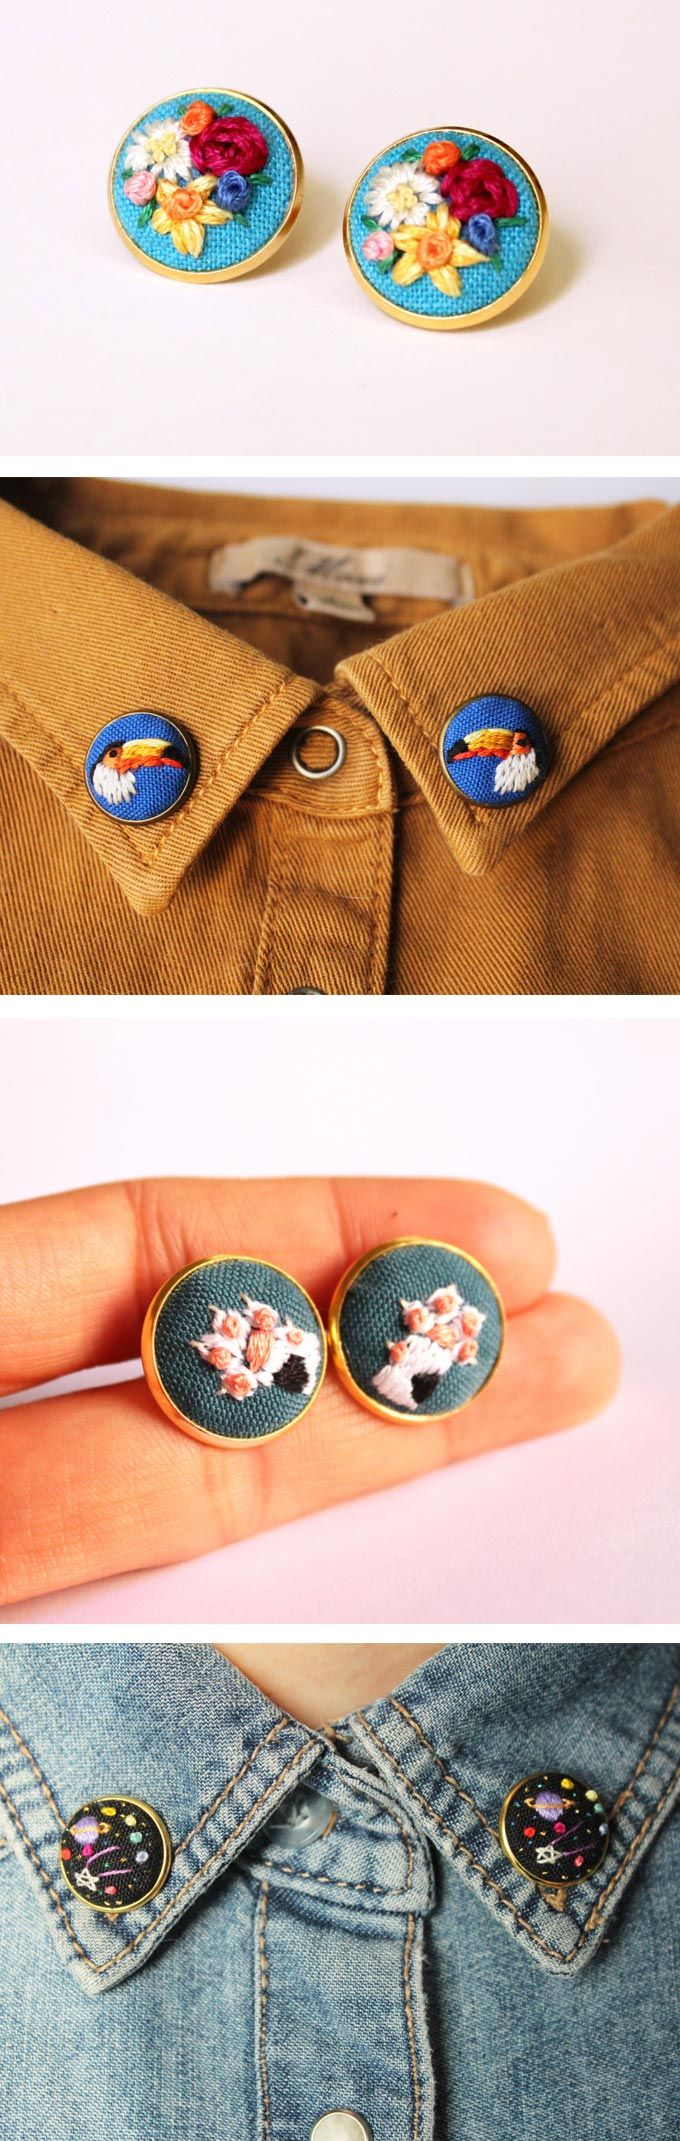 Baobap embroidered collar pins More